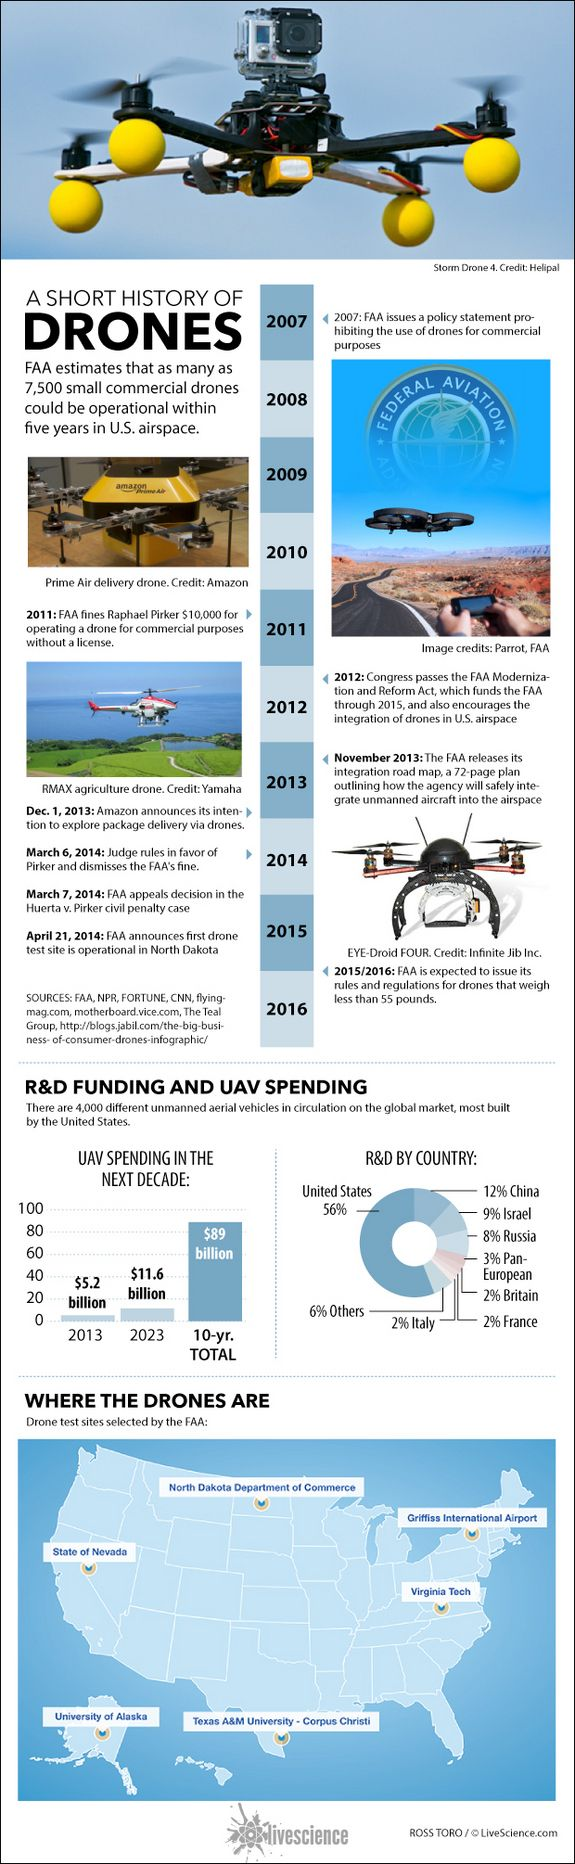 Facts About Drones (Infographic) via LiveSciencewww.SELLaBIZ.gr ΠΩΛΗΣΕΙΣ ΕΠΙΧΕΙΡΗΣΕΩΝ ΔΩΡΕΑΝ ΑΓΓΕΛΙΕΣ ΠΩΛΗΣΗΣ ΕΠΙΧΕΙΡΗΣΗΣ BUSINESS FOR SALE FREE OF CHARGE PUBLICATION